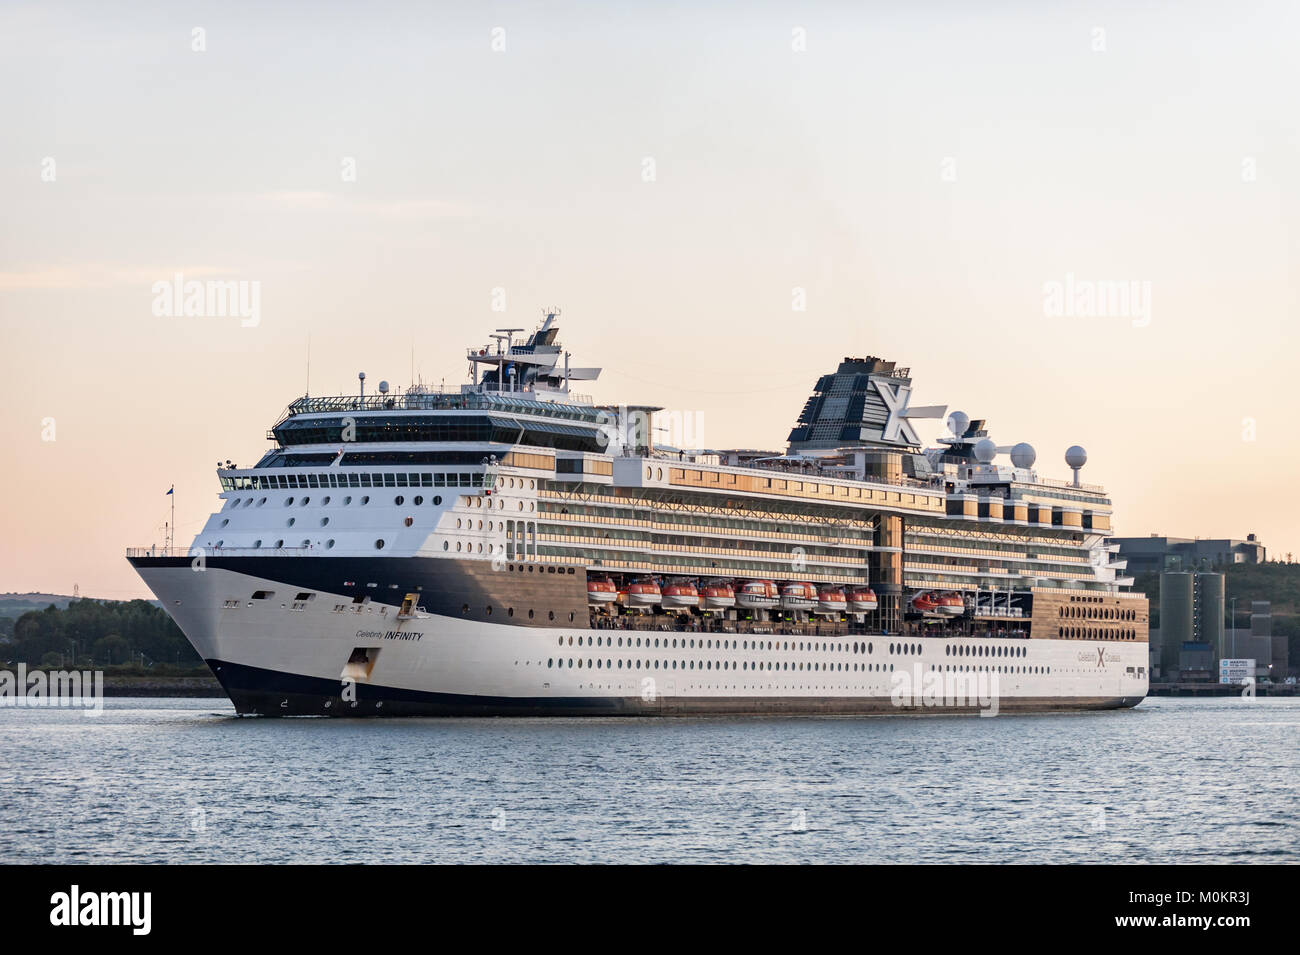 cruise-liner-celebrity-infinity-approaches-the-dock-in-cobh-ireland-M0KR3J.jpg